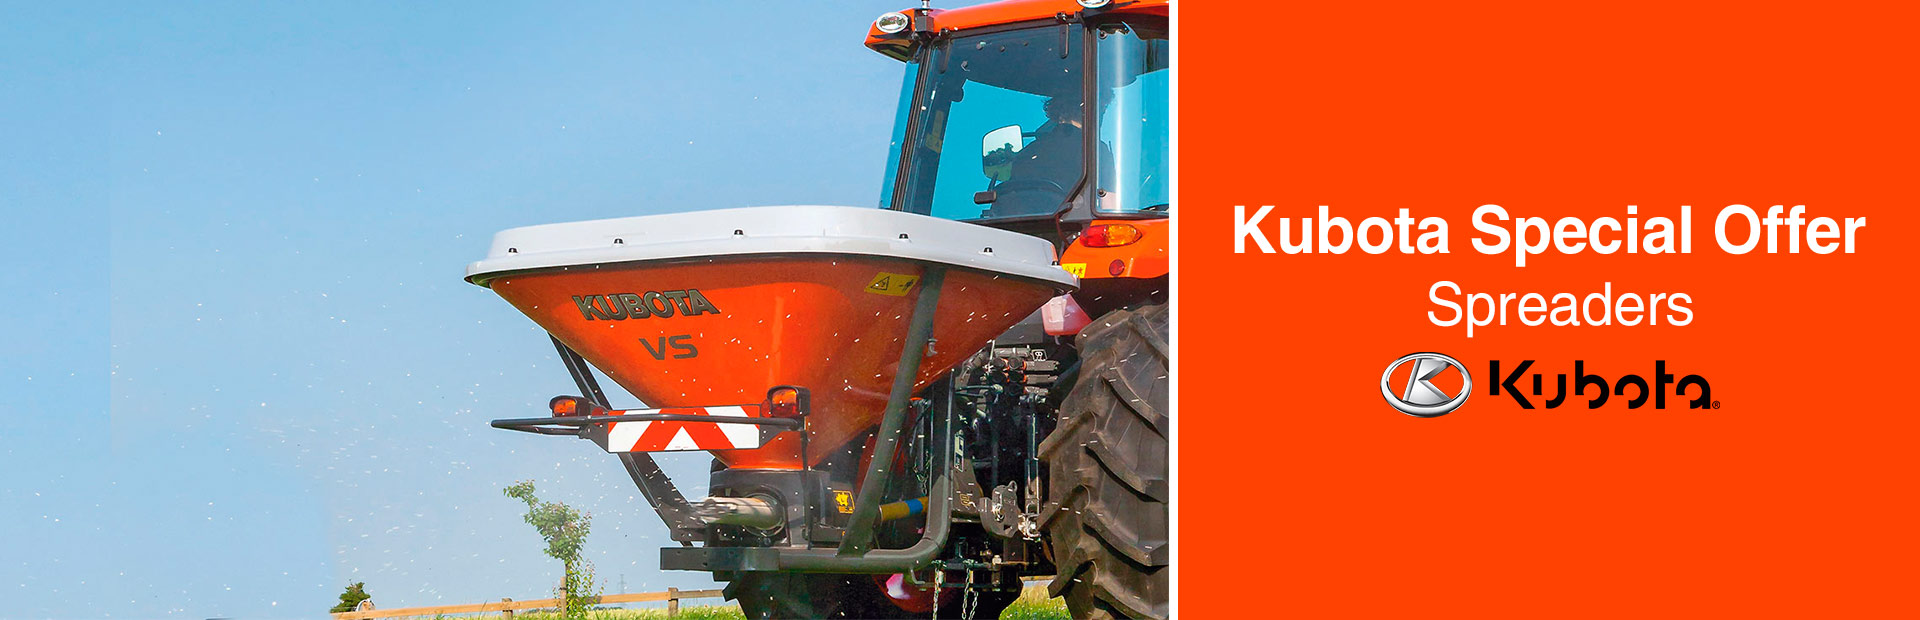 Kubota: Kubota Special Offer - Spreaders